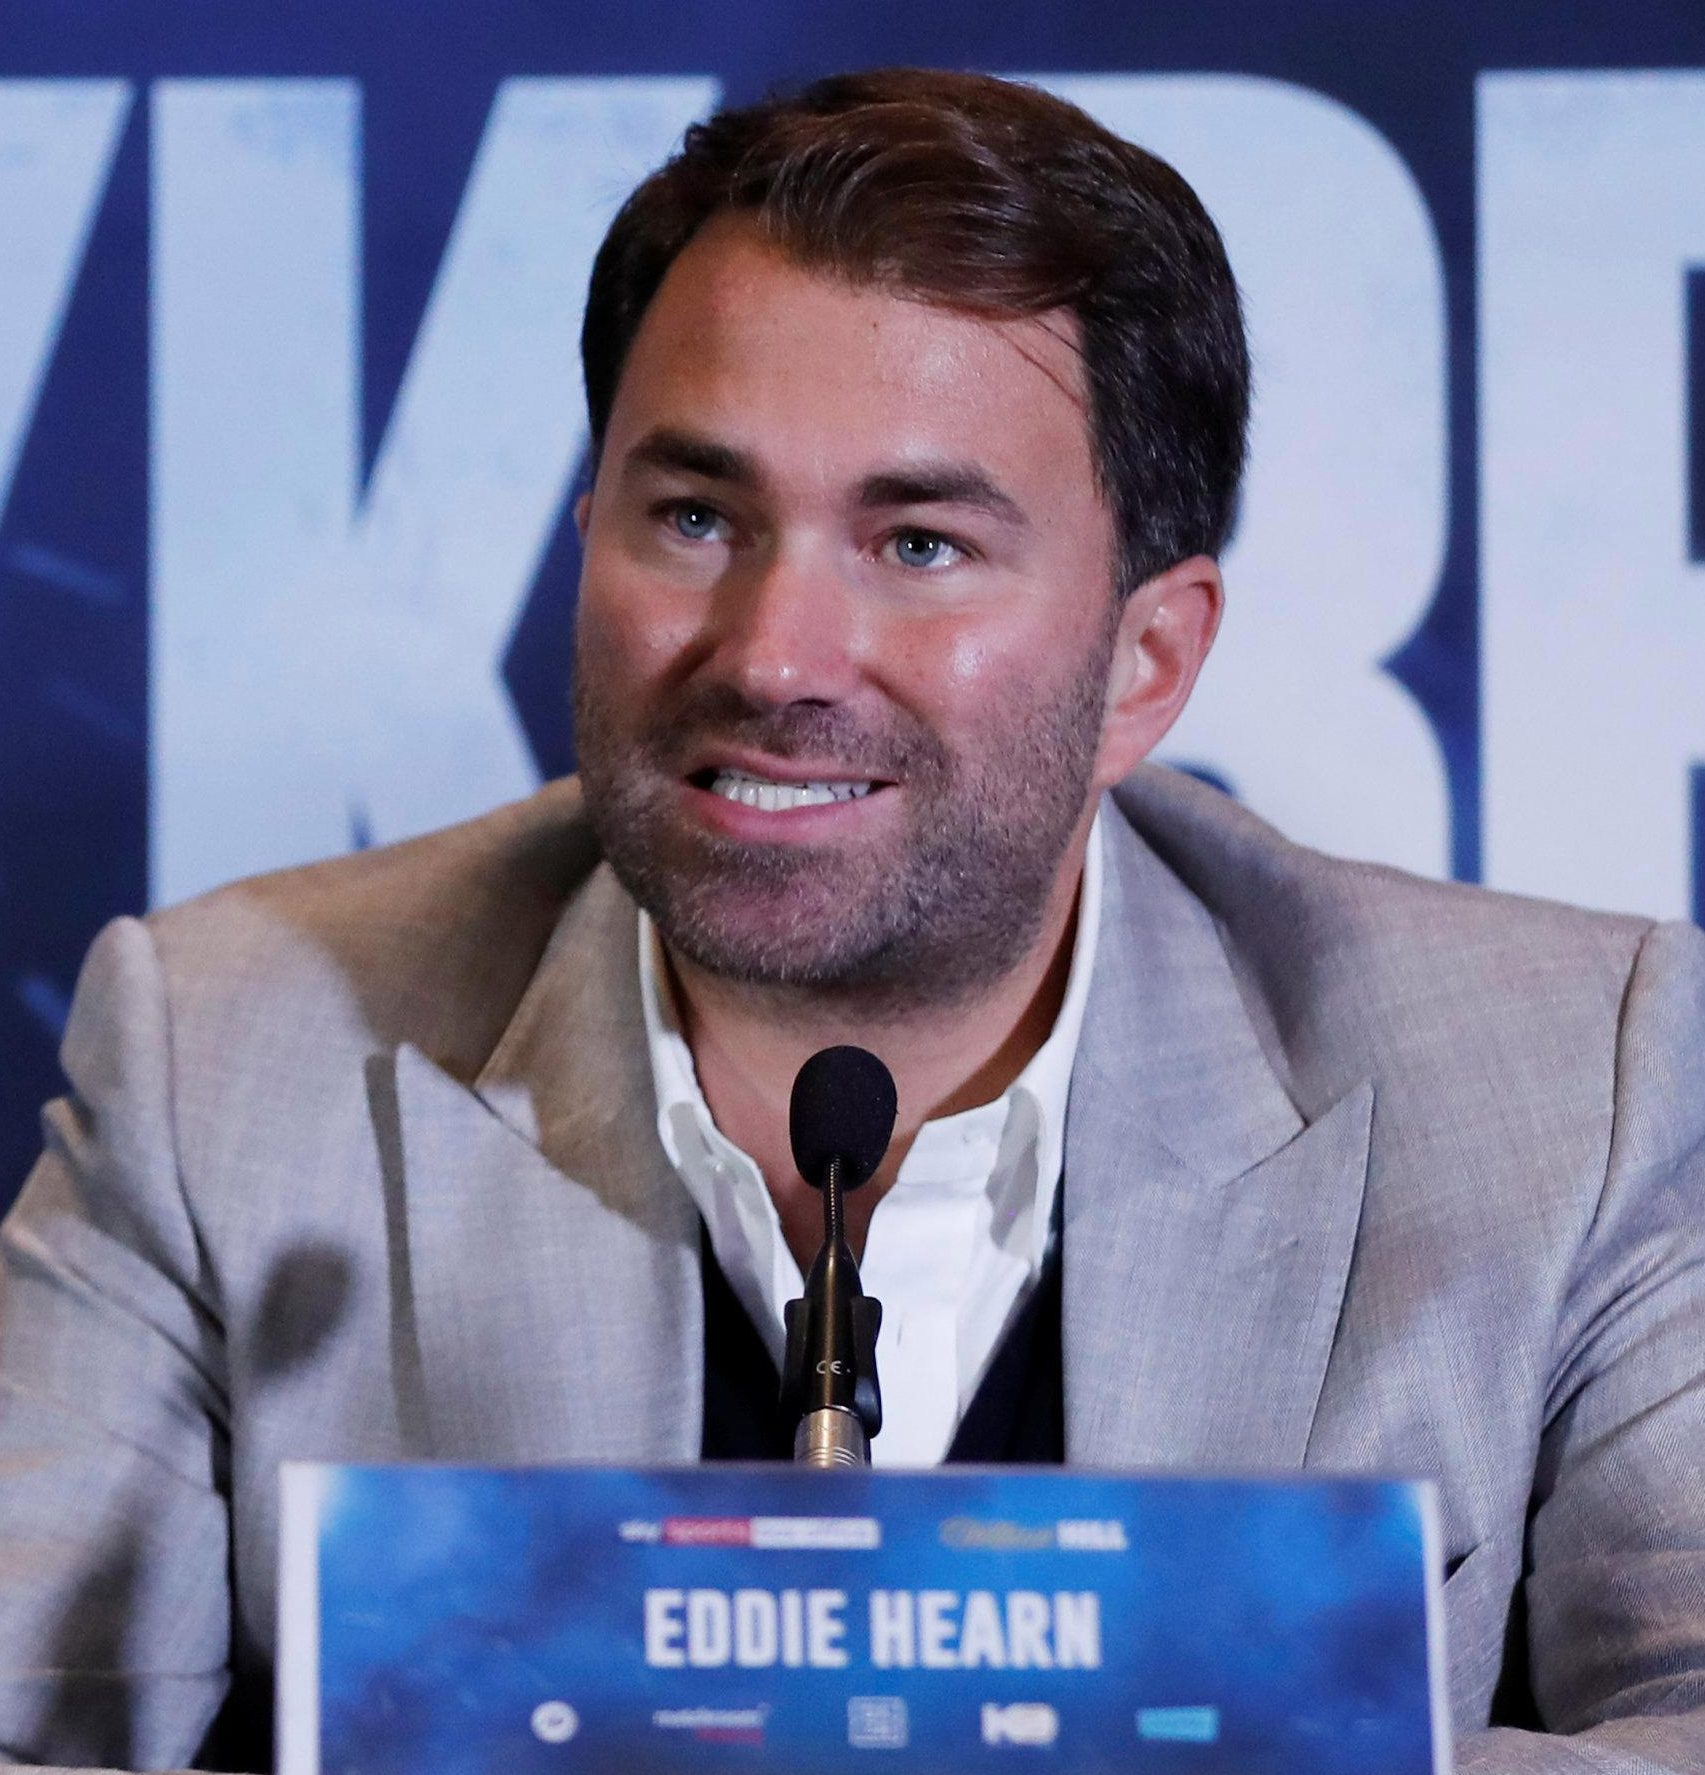 Both fighters are represented by Eddie Hearn who will act as a mediator between the two teams